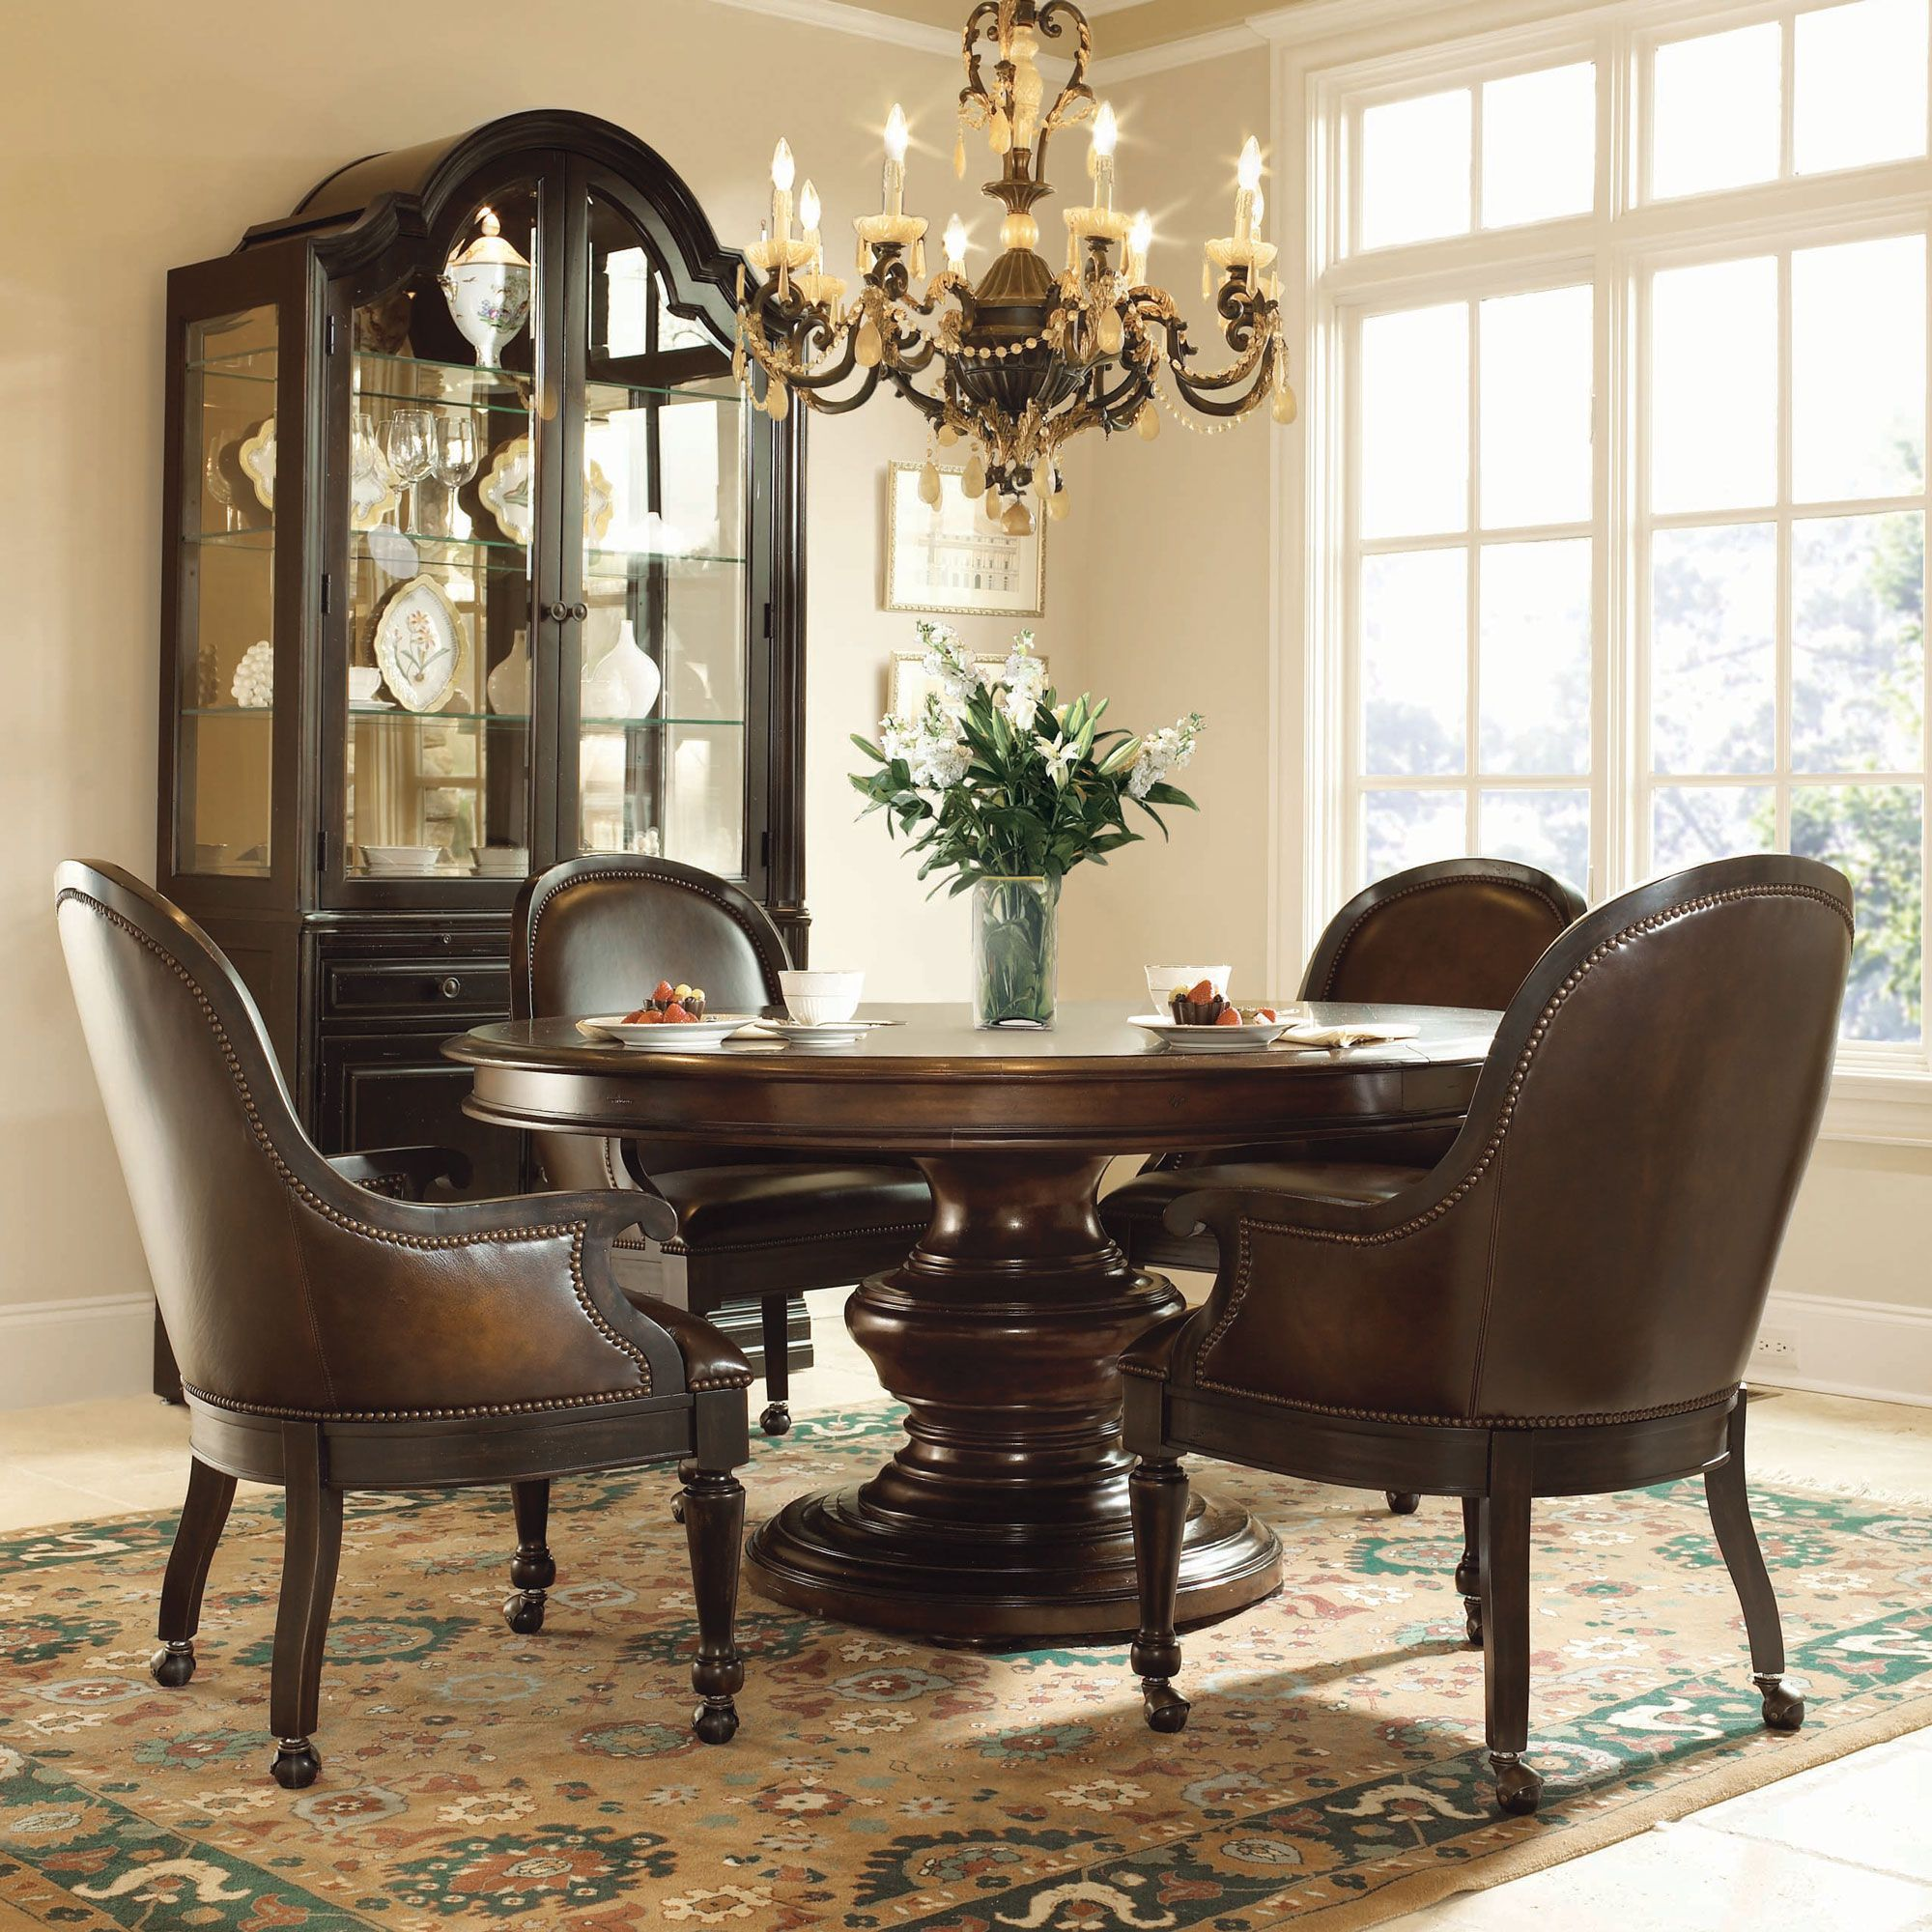 Kitchen Table And Chairs With Wheels: Bernhardt Normandie Manor 5pc Round Dining Room Set With